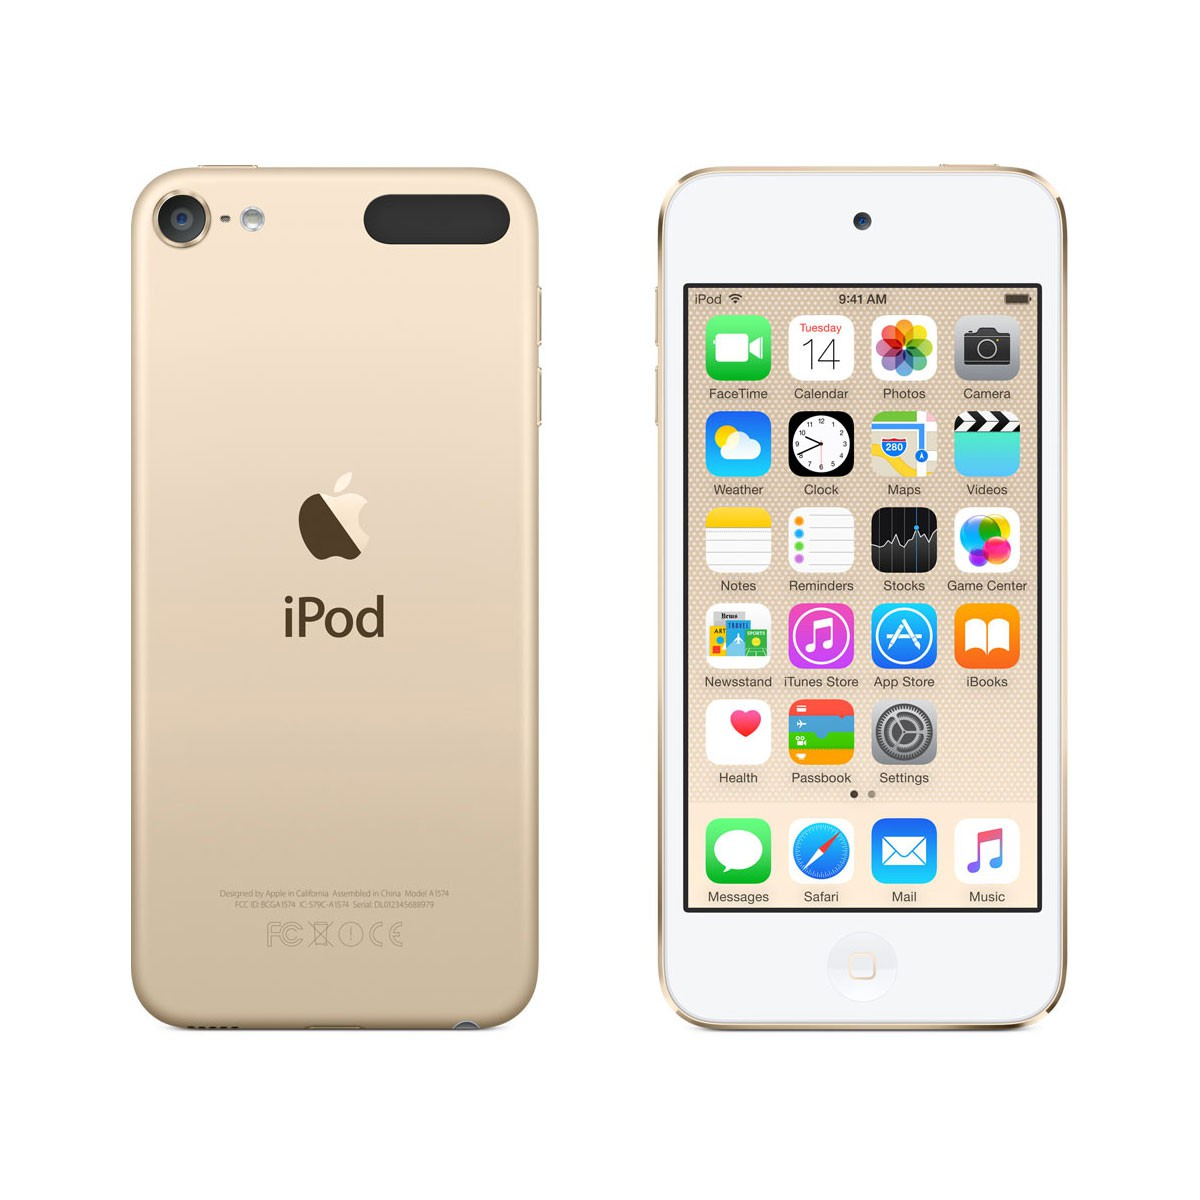 iPod touch 16GB - Gold